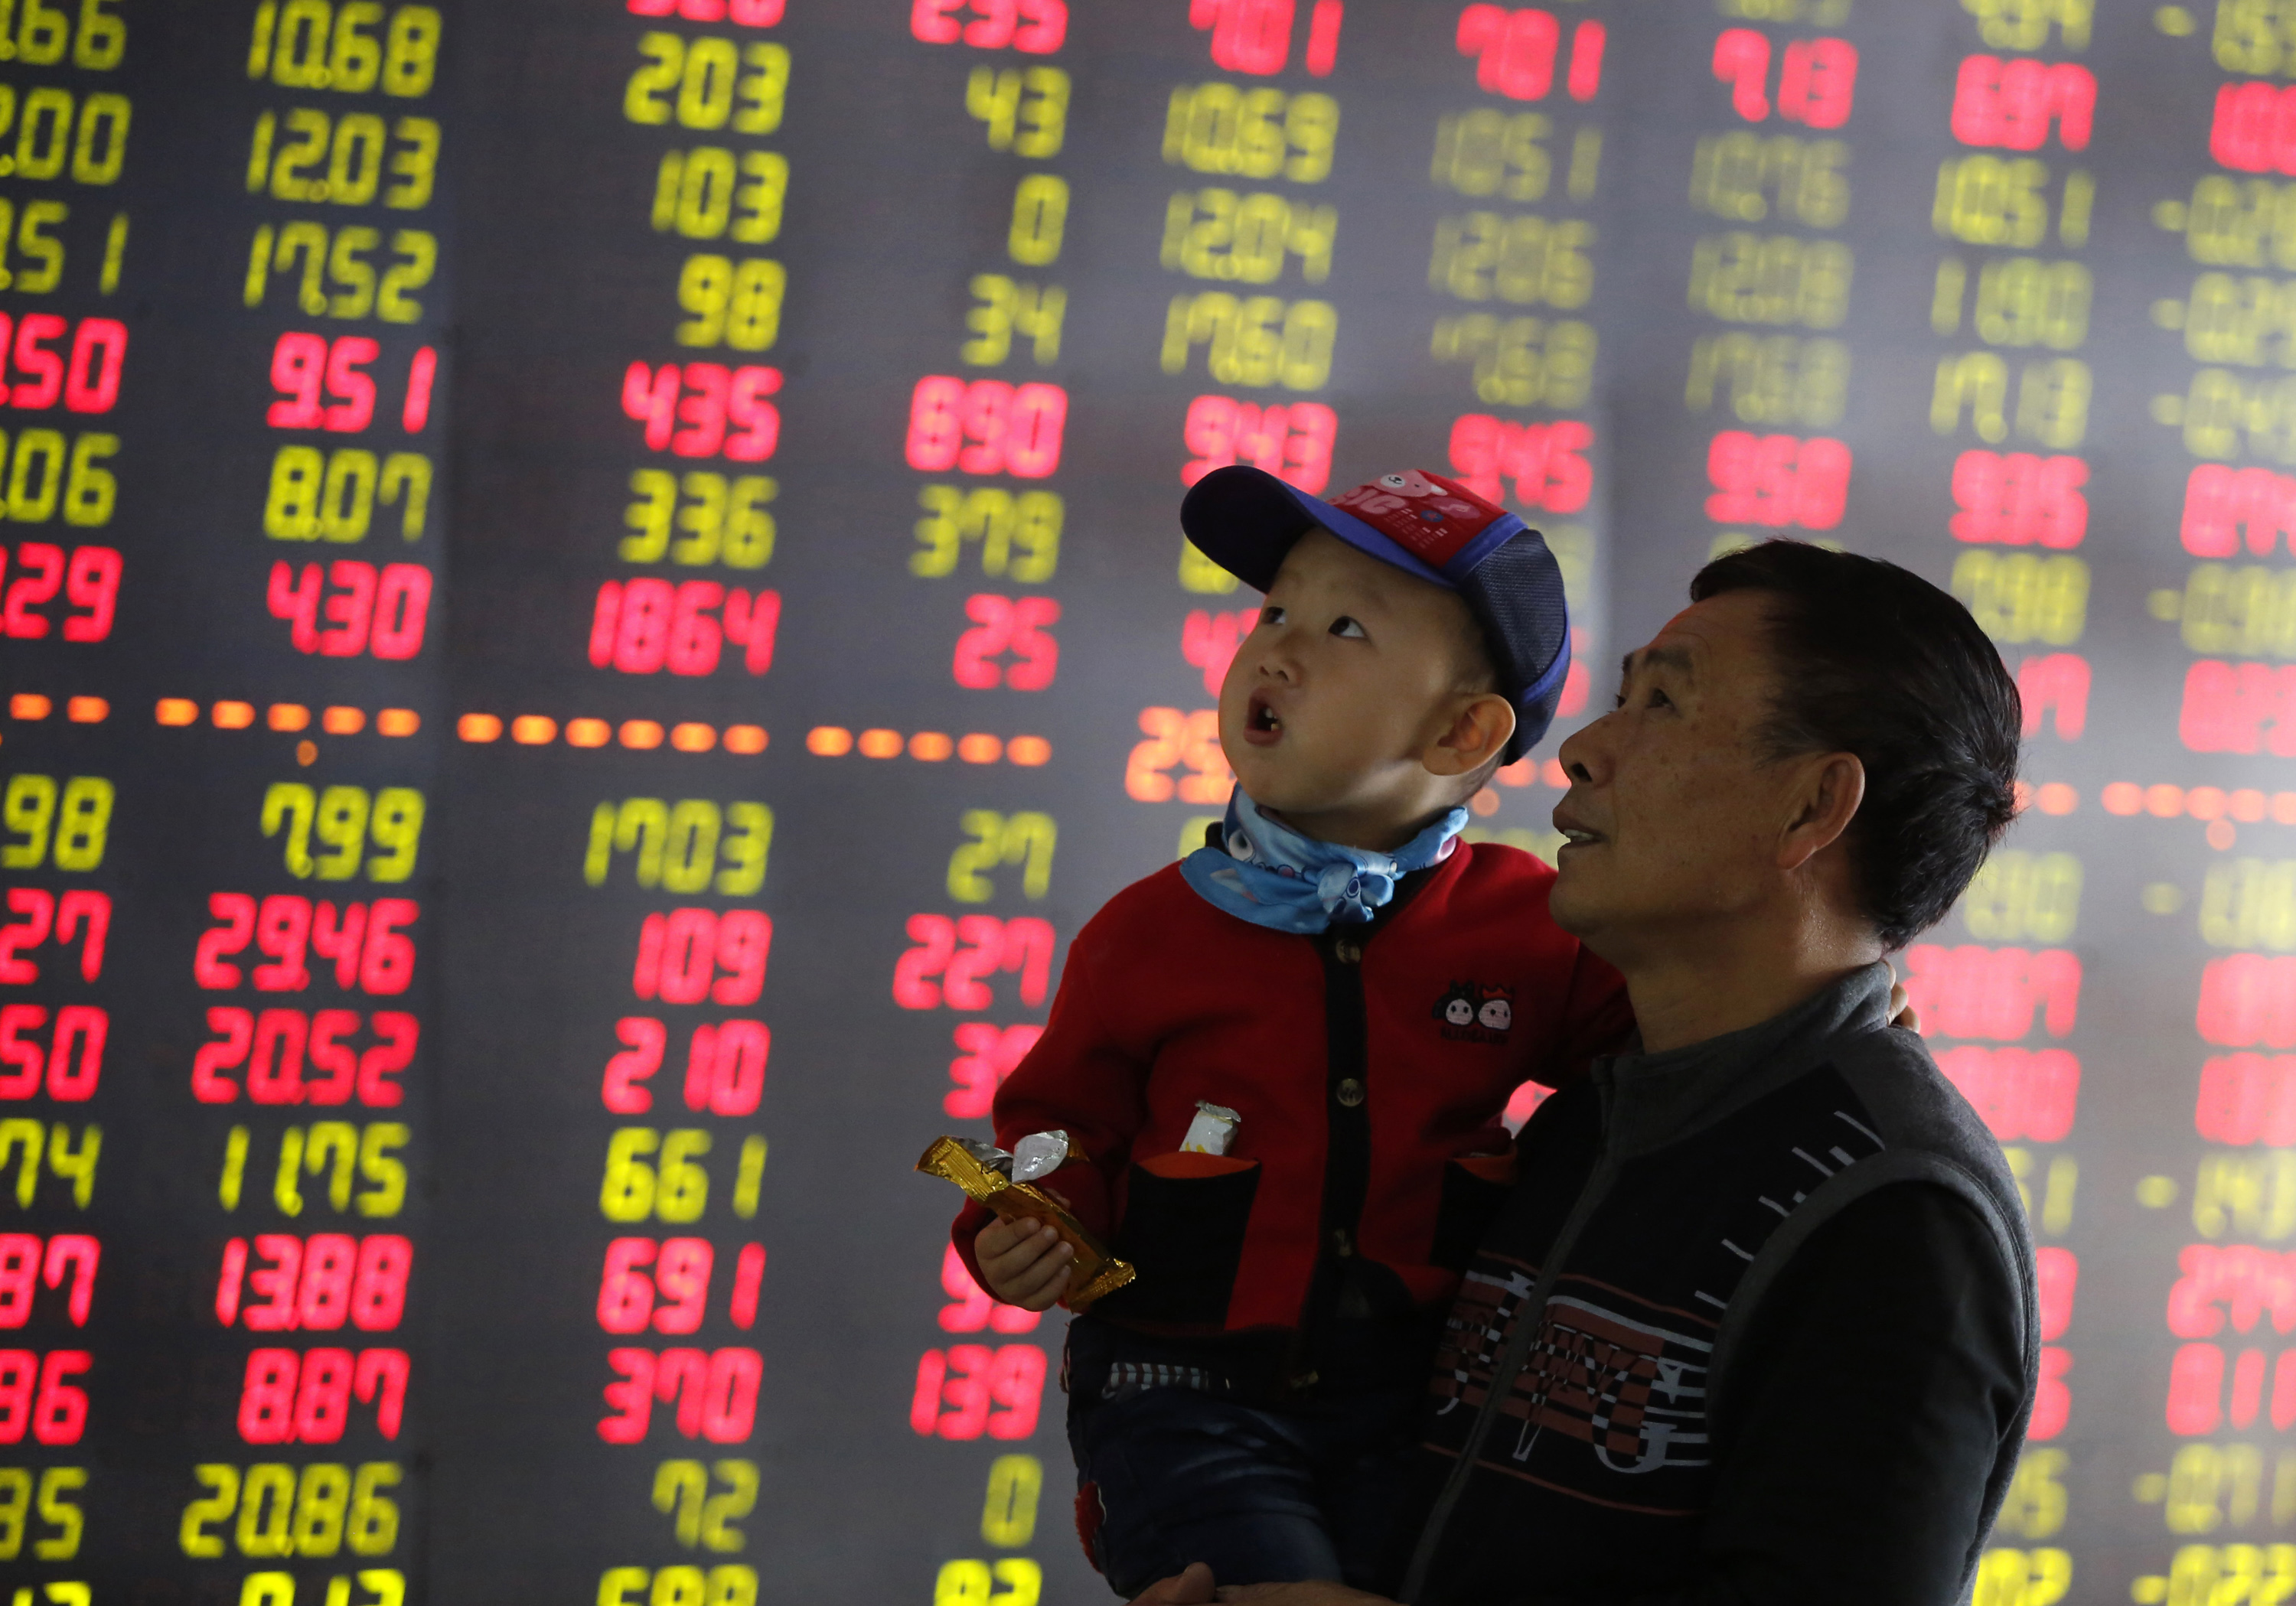 An investor holds a child in front of an electronic screen showing stock information at a brokerage house in Shenyang, Liaoning province, Oct. 16, 2014.